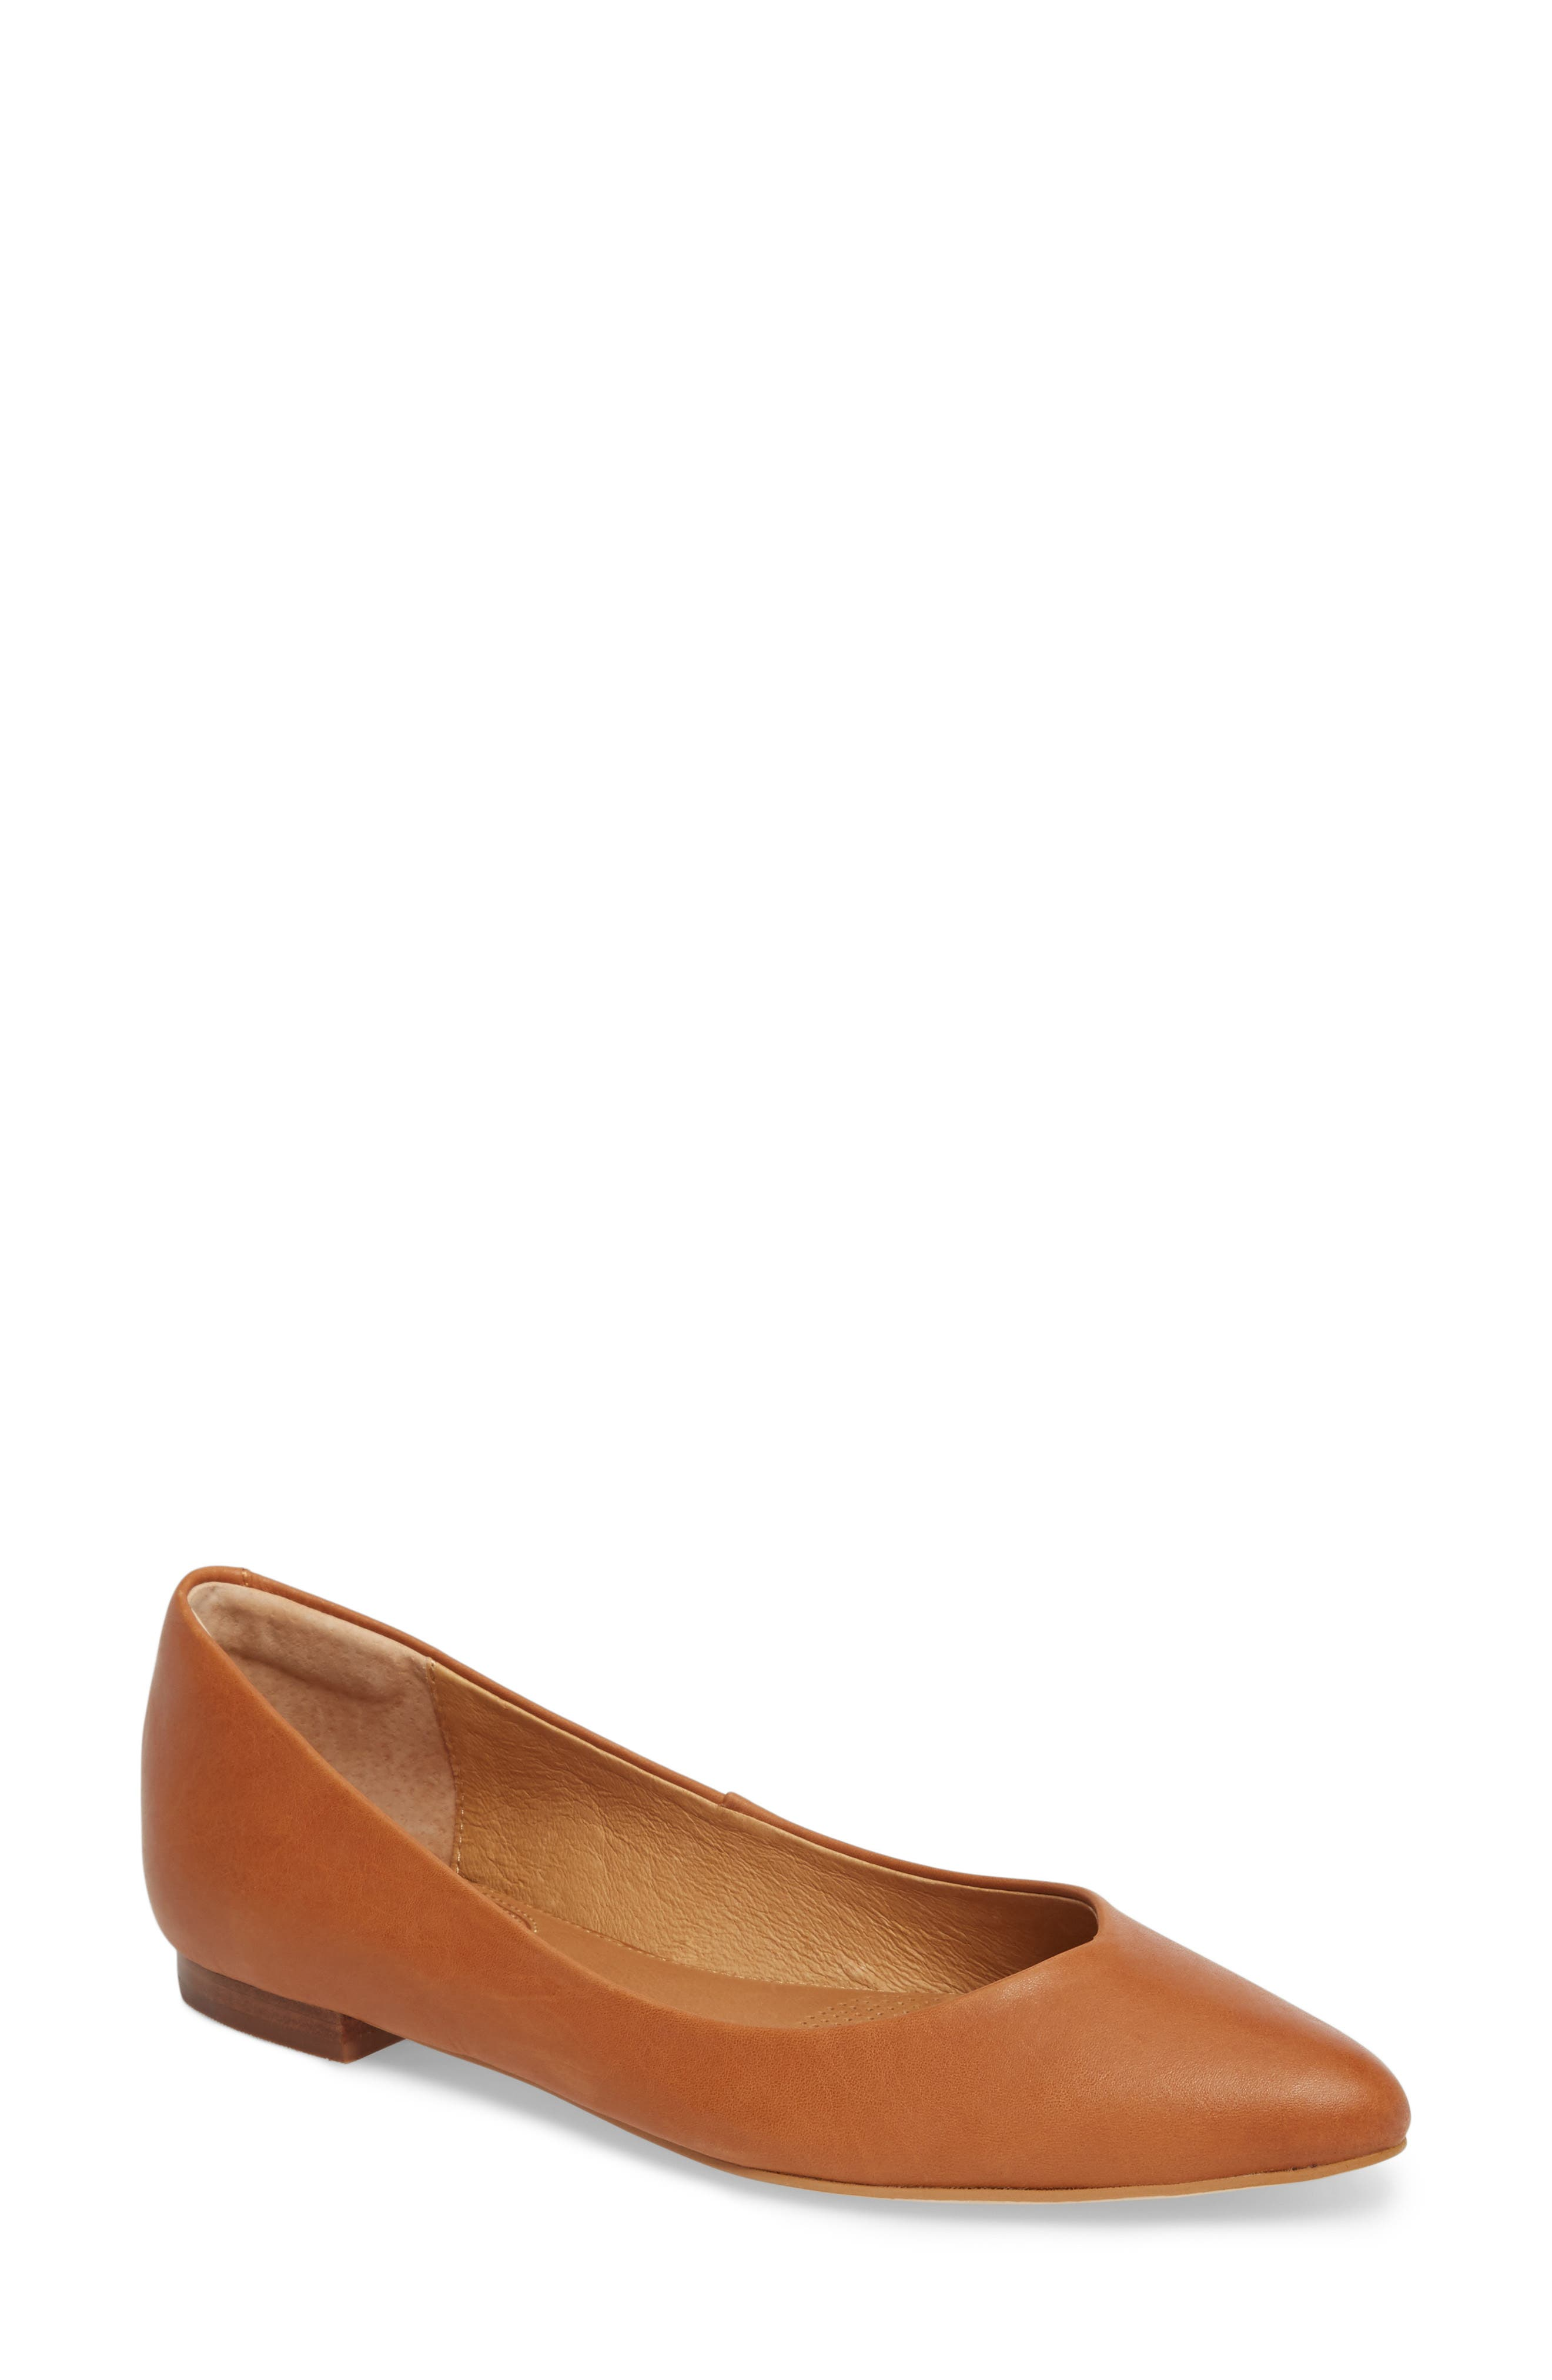 Comfortable enough for the office and stylish enough for after hours, this pointy-toe leather flat is cushioned and breathable for all-day wear. Style Name: Cc Corso Como Jullia Flat (Women). Style Number: 5587057. Available in stores.